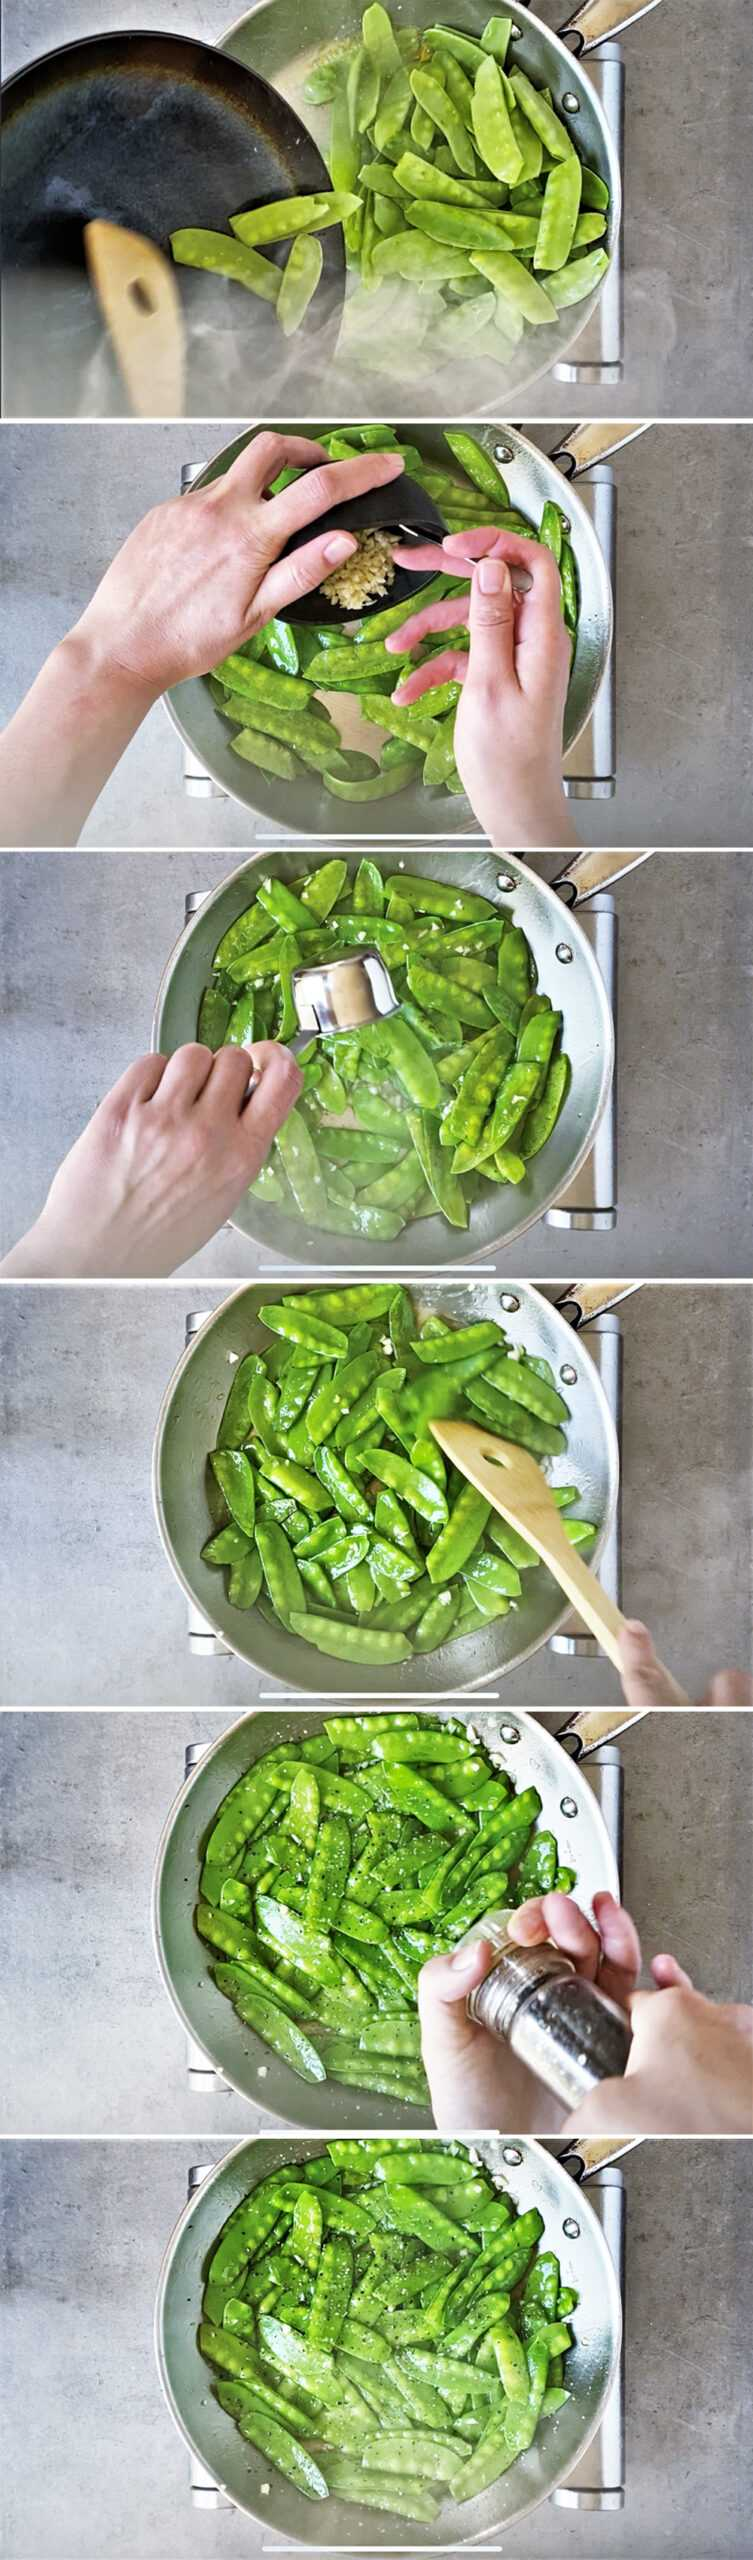 Step by step how to cook snow peas in skillet on stove.